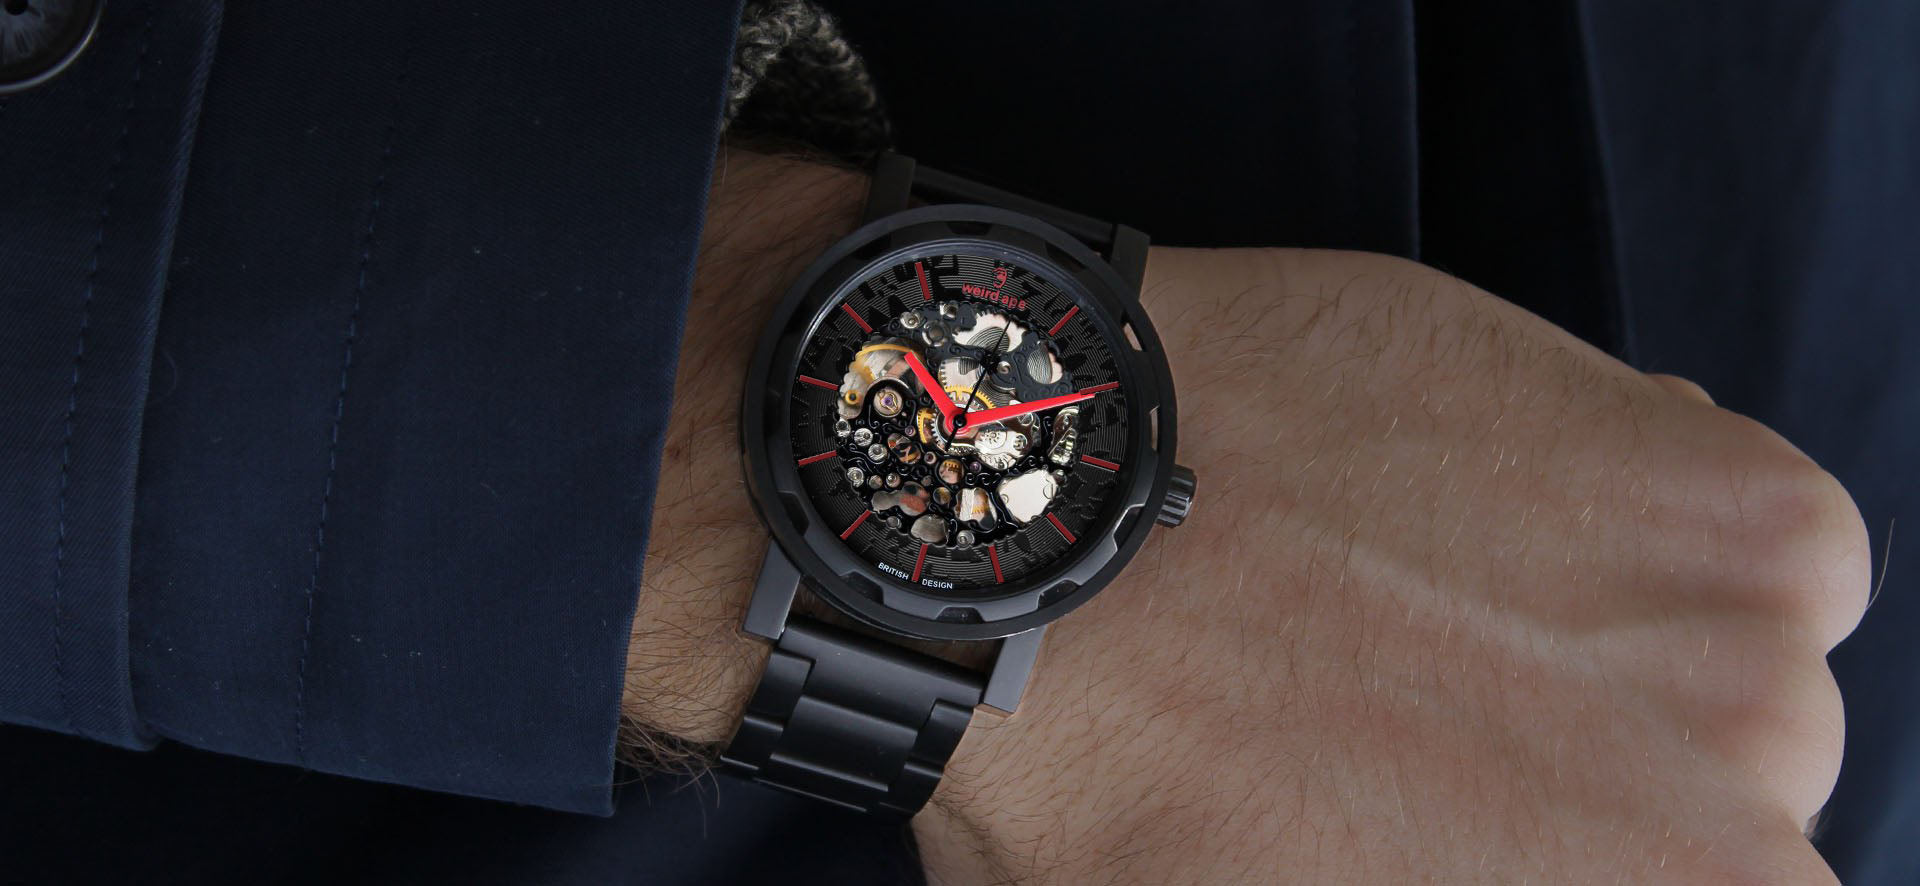 Black skeleton watch with red hands and a metal strap in a lifestyle image